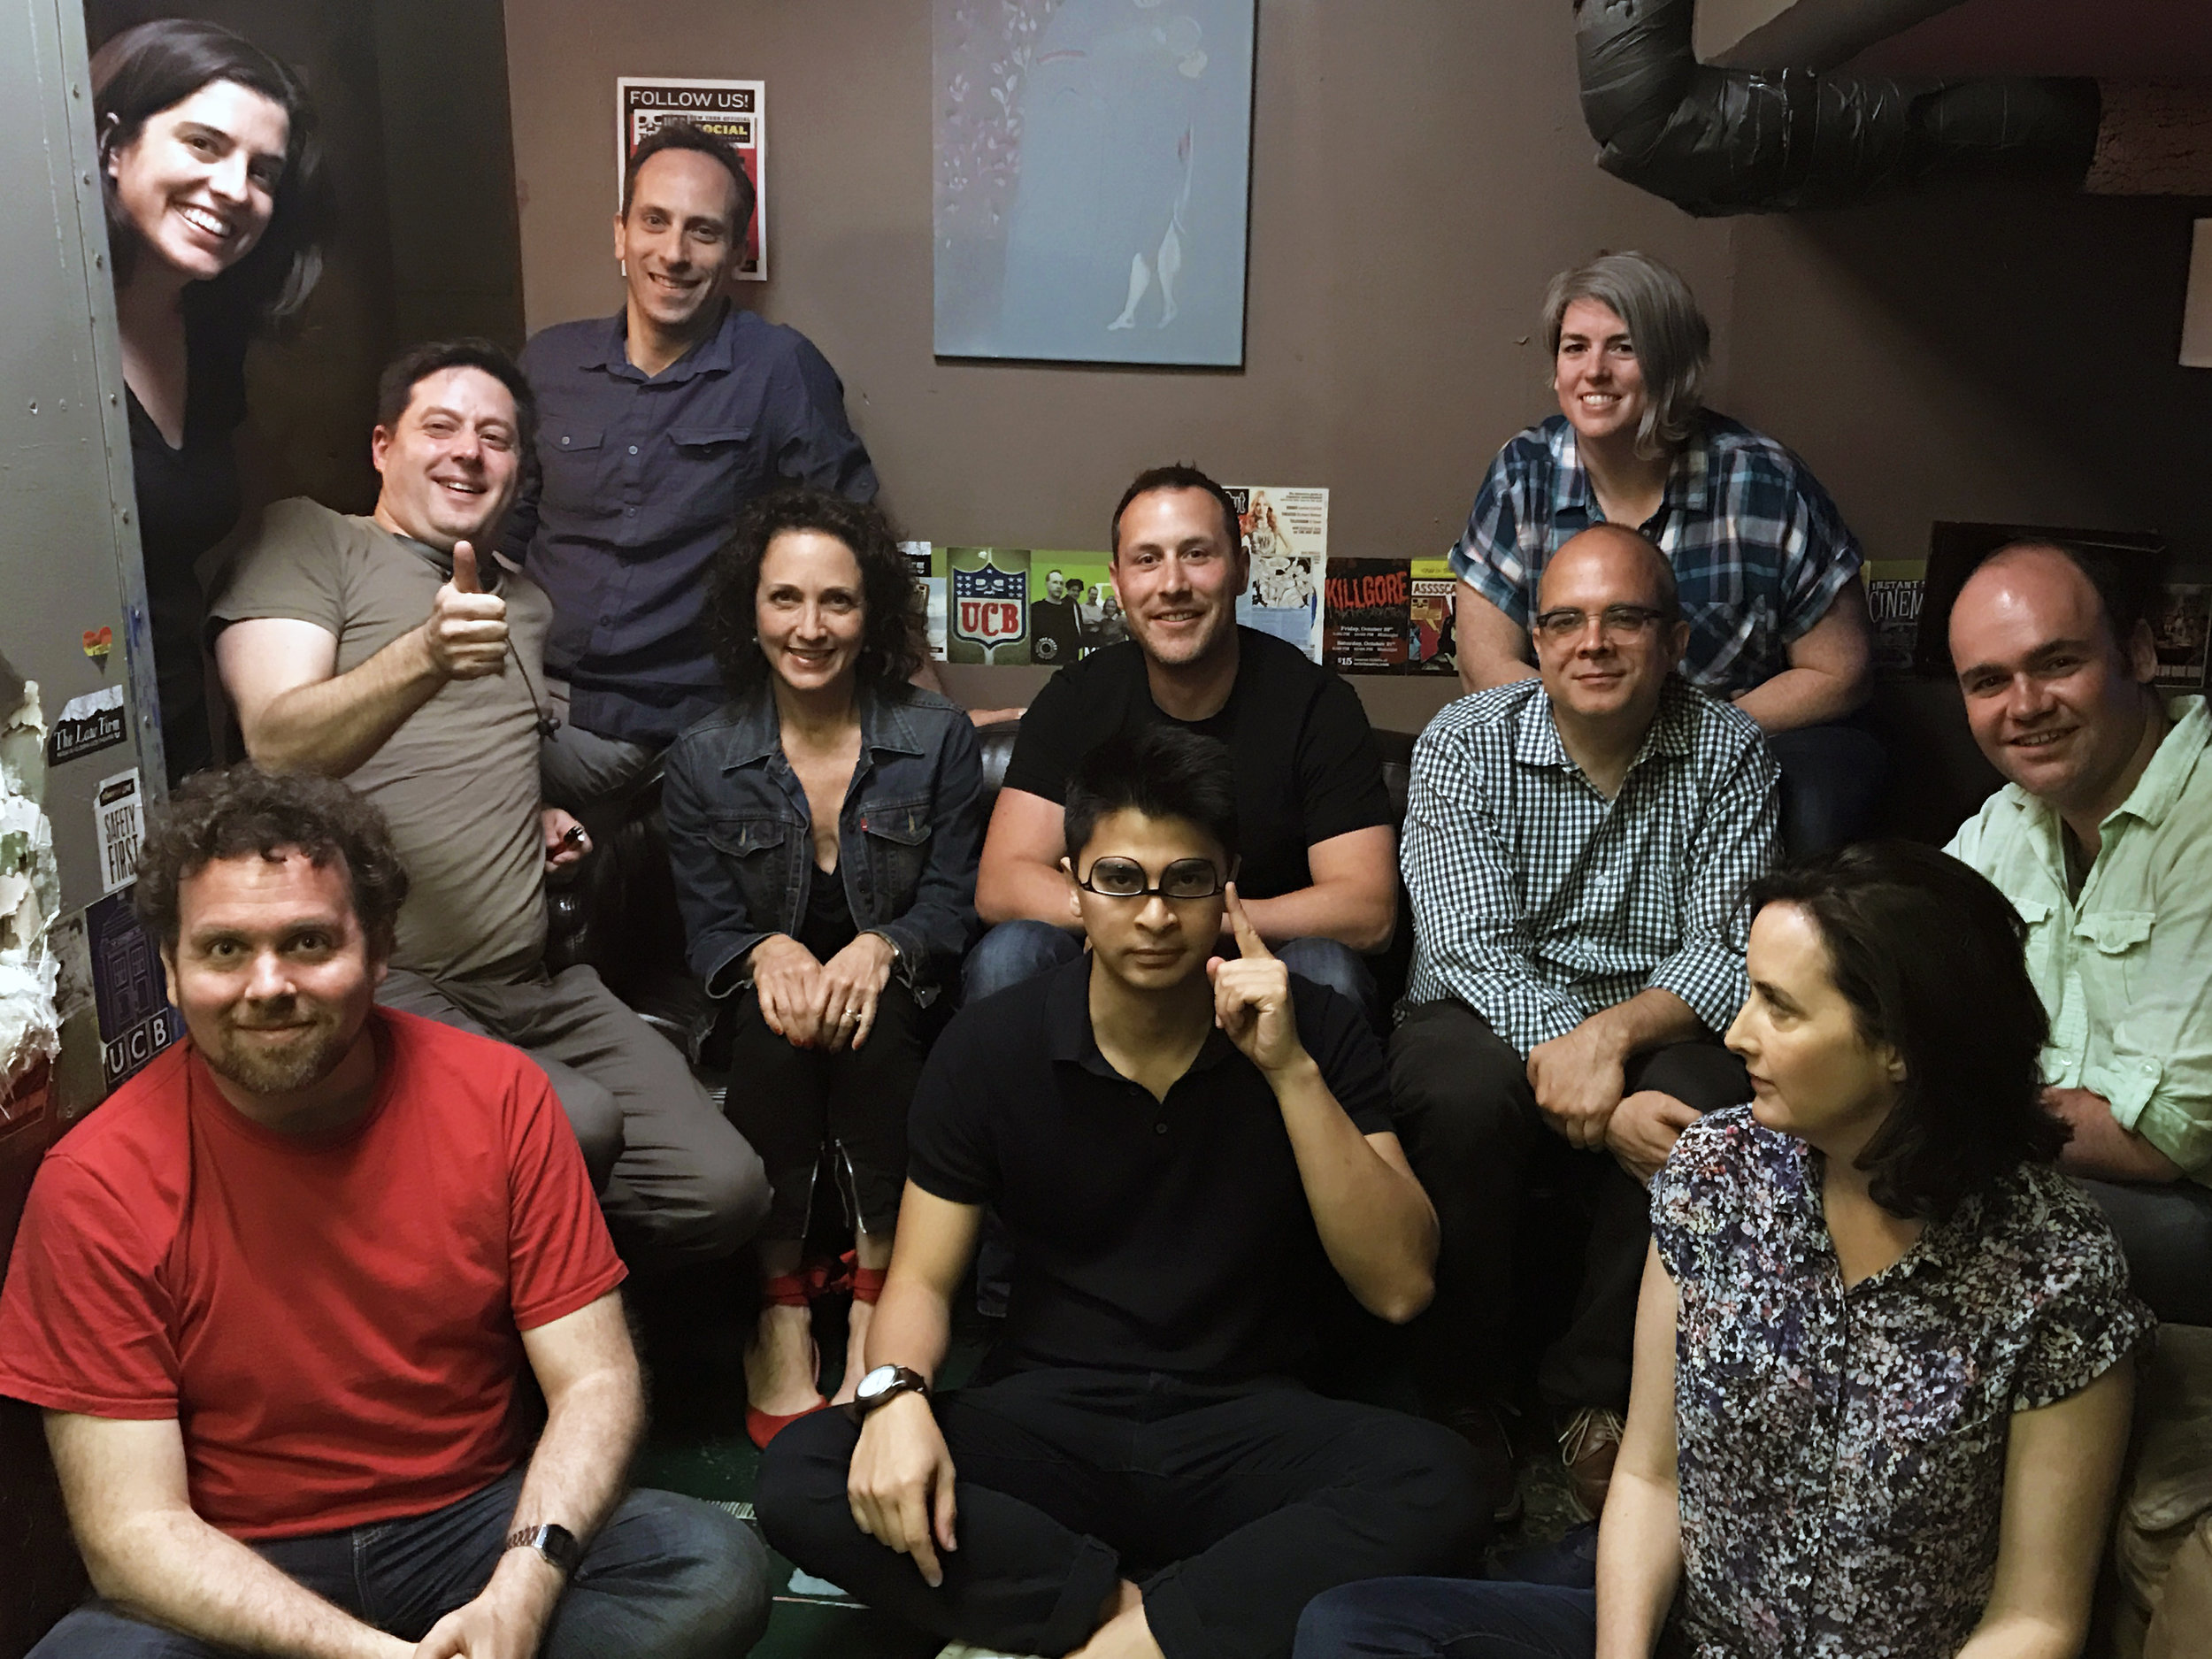 Monologists: Bebe Neuwirth, Mike Carlsen